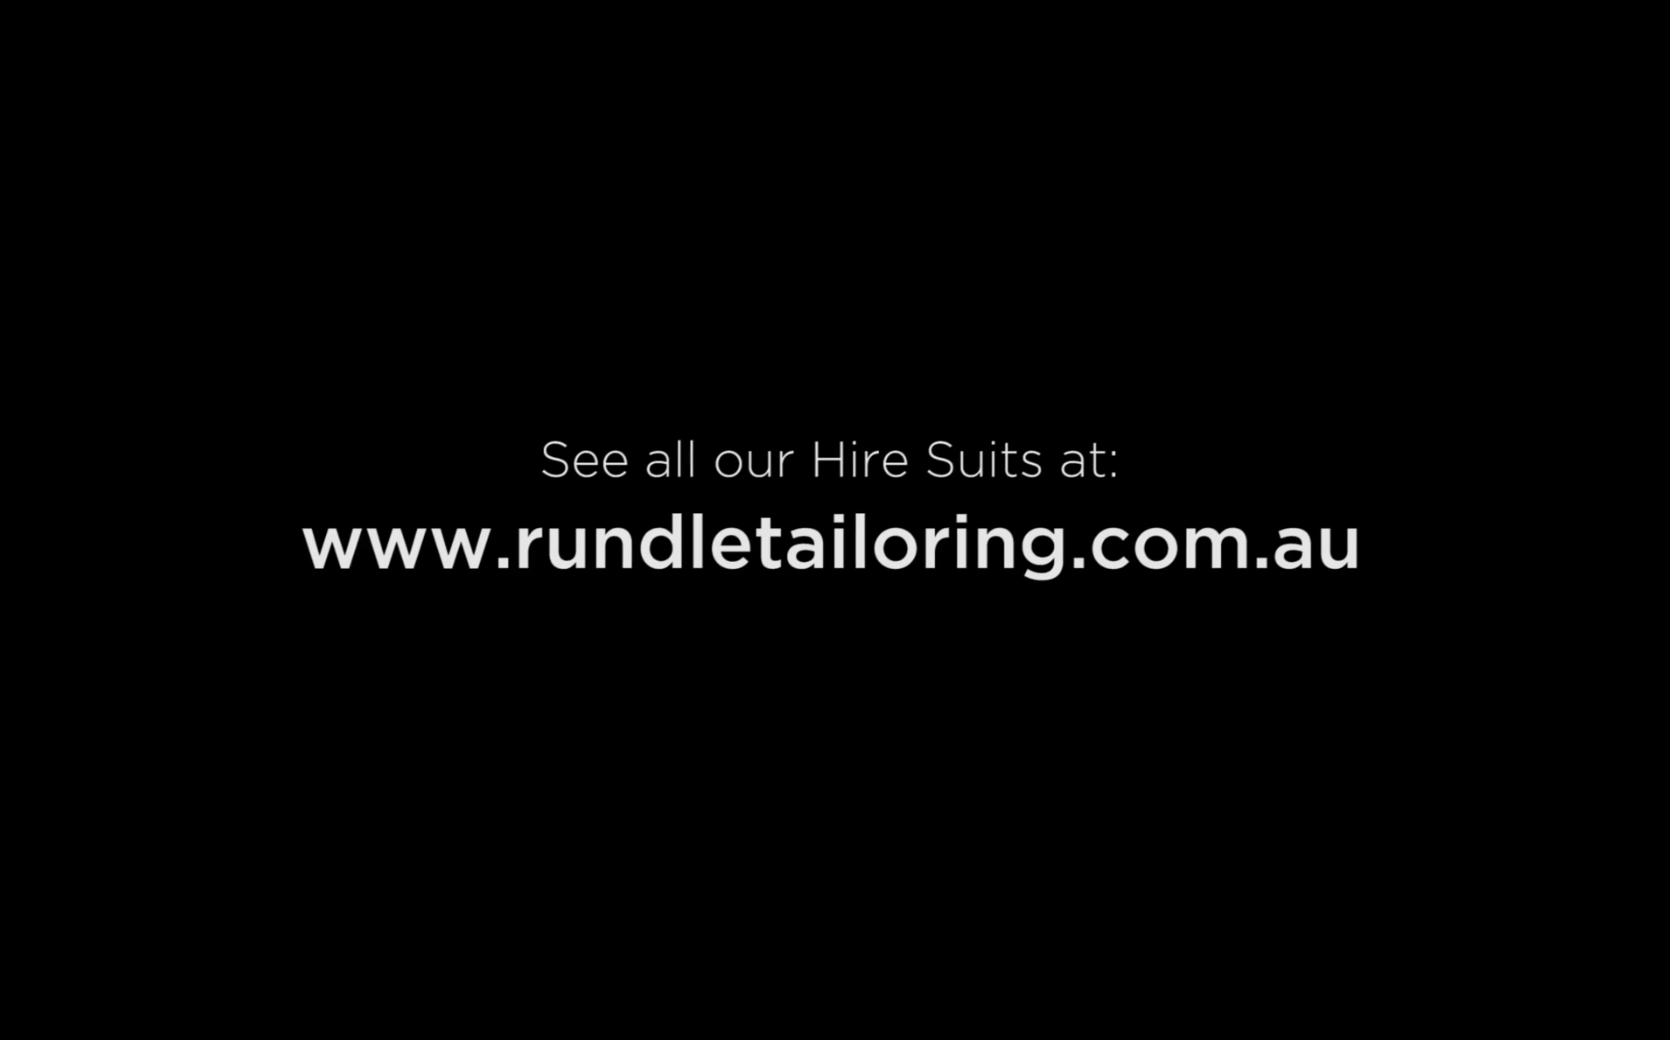 2018-05-10 00_28_36-Rundle Tailoring Hire Suit - Brand Video on Vimeo.png